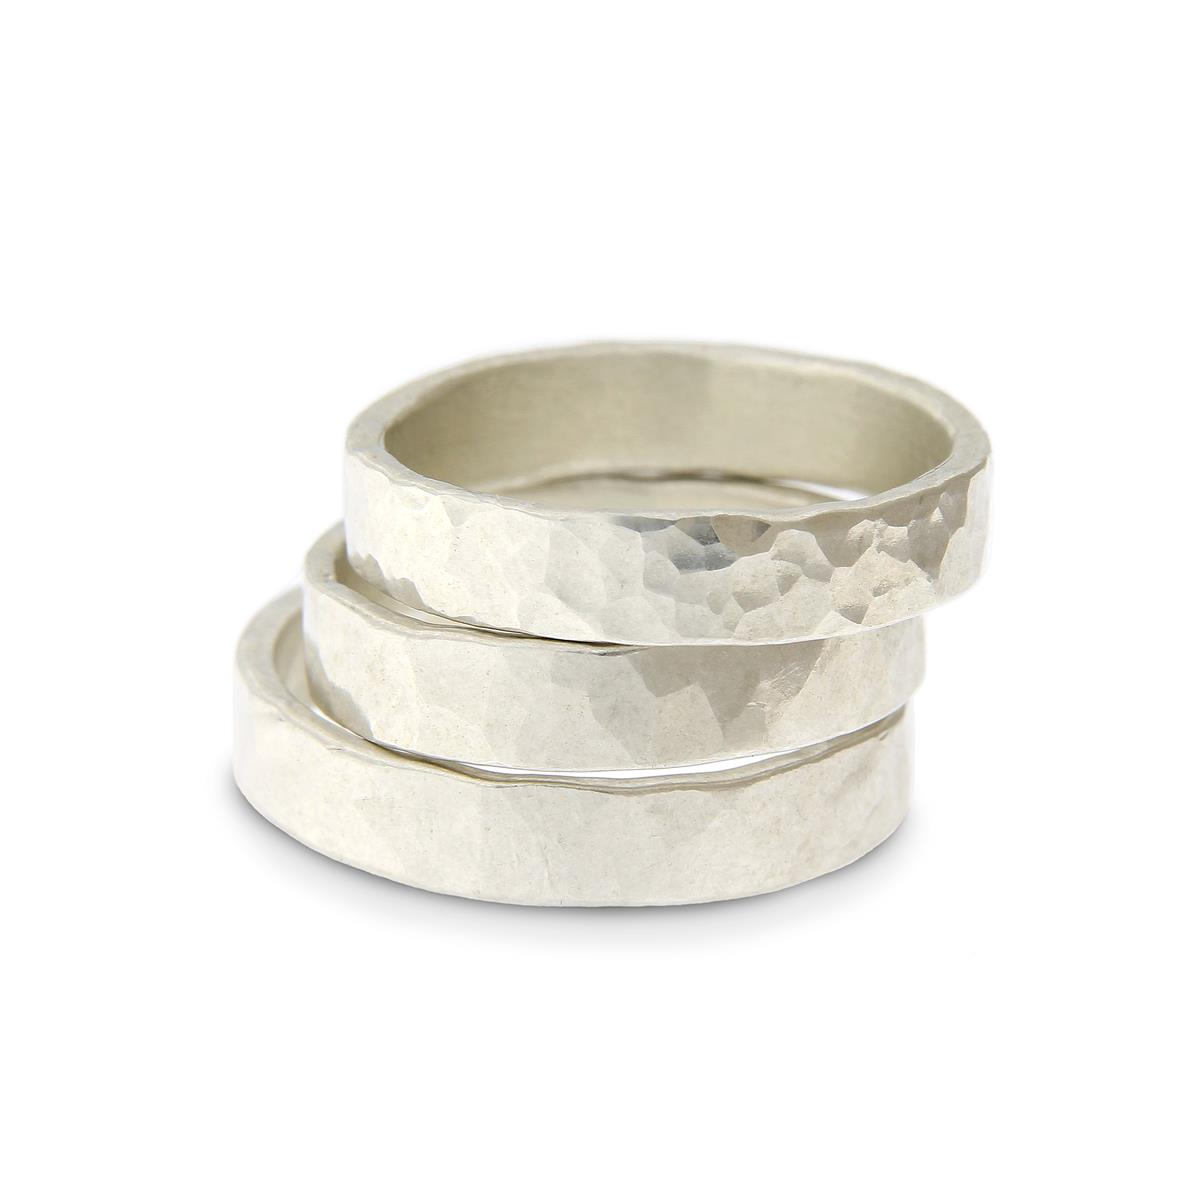 Katie g. Jewellery_Wide hammered Rings 4,5mm - Silver